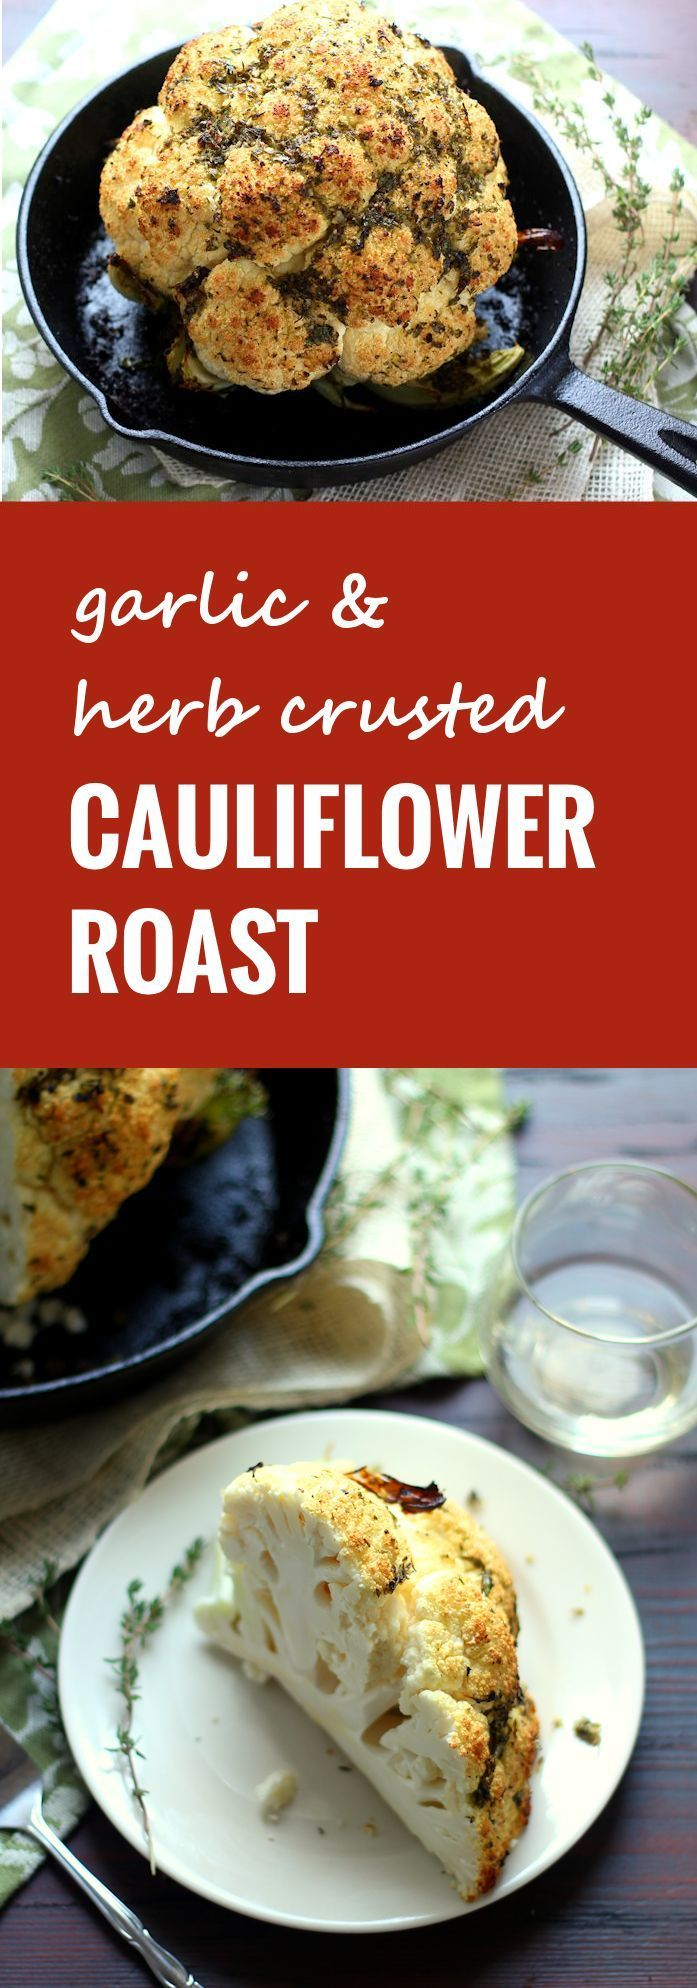 This whole roasted cauliflower is slathered in a mixture of lemony garlic and herbs and baked up until tender crisp on the inside, and lightly browned on the outside.